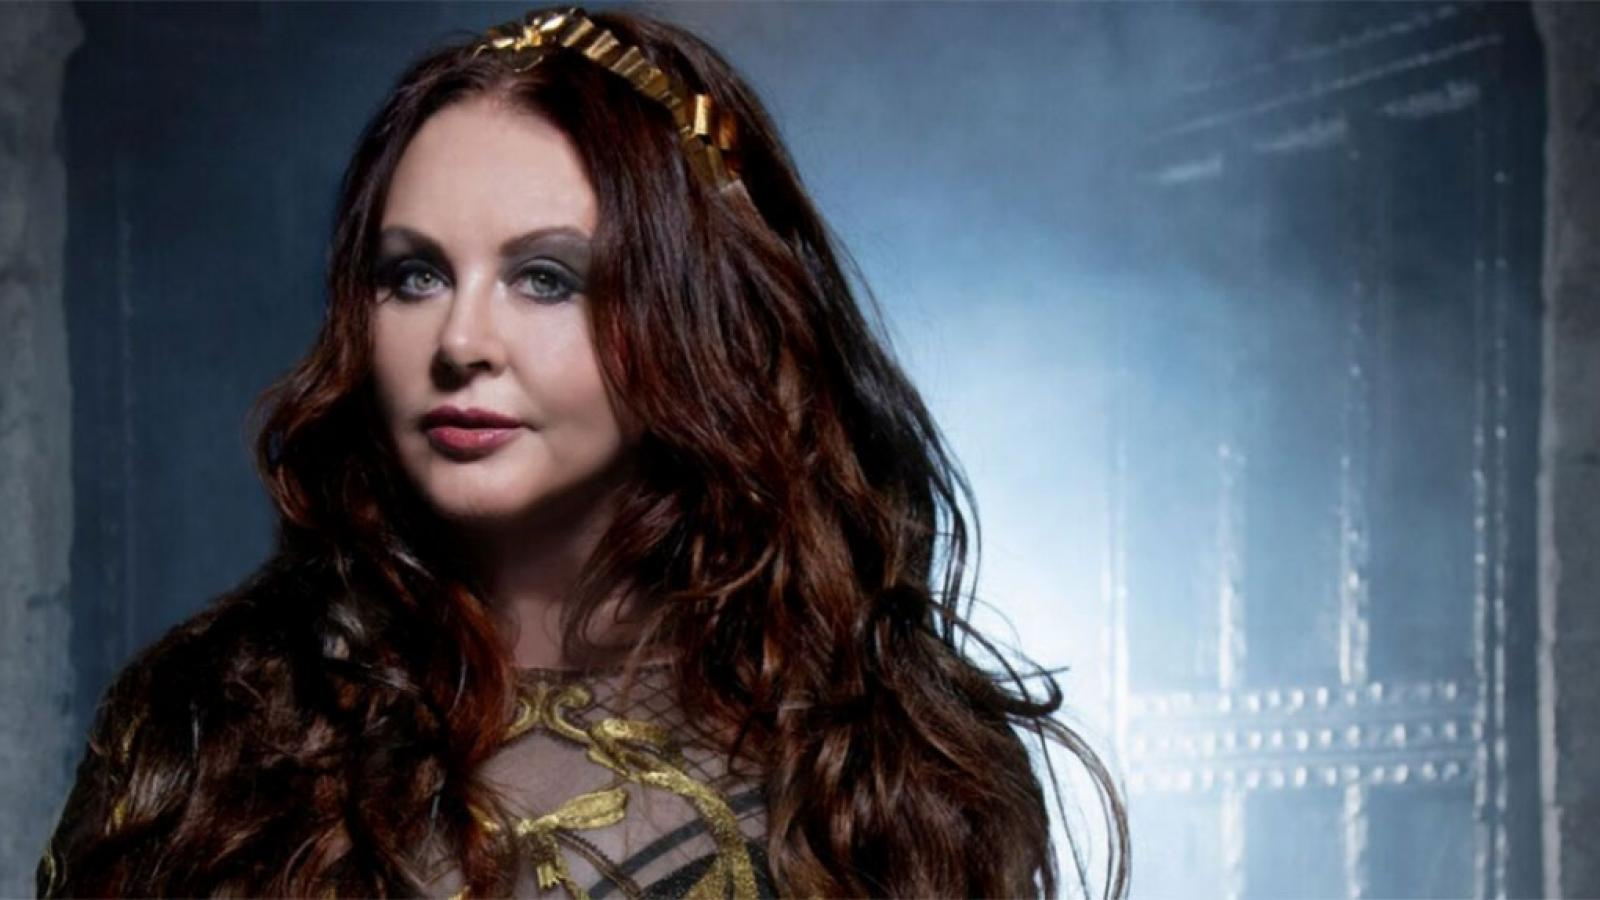 Sarah Brightman in Concert at the Chicago Theatre